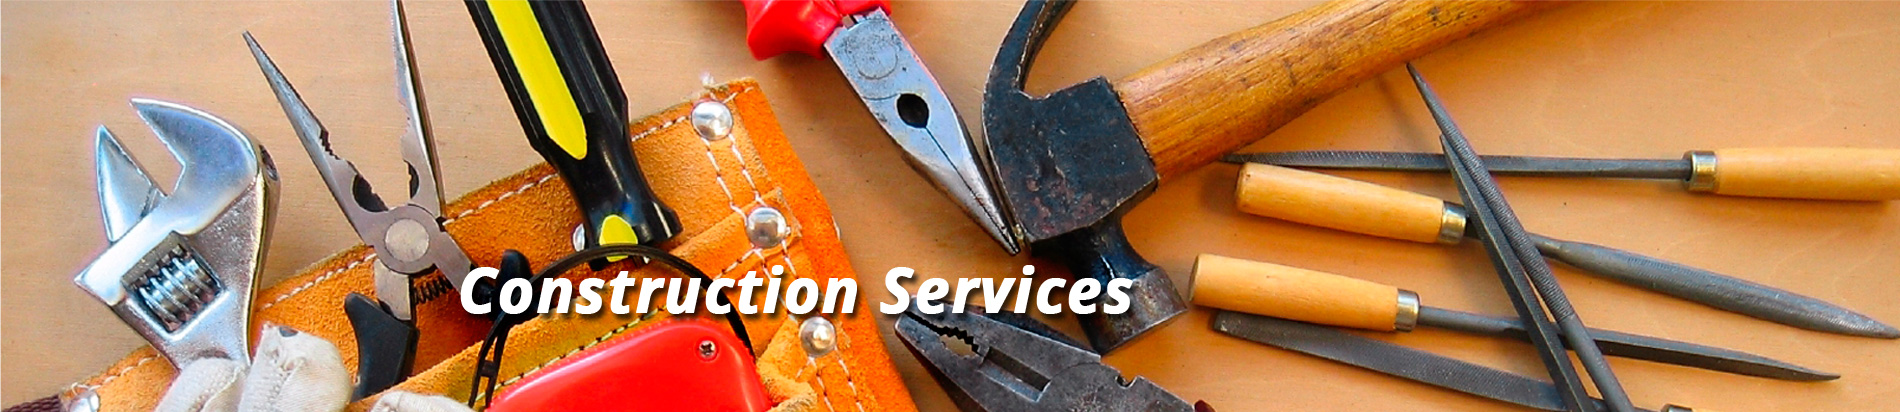 Construction-Services-banner